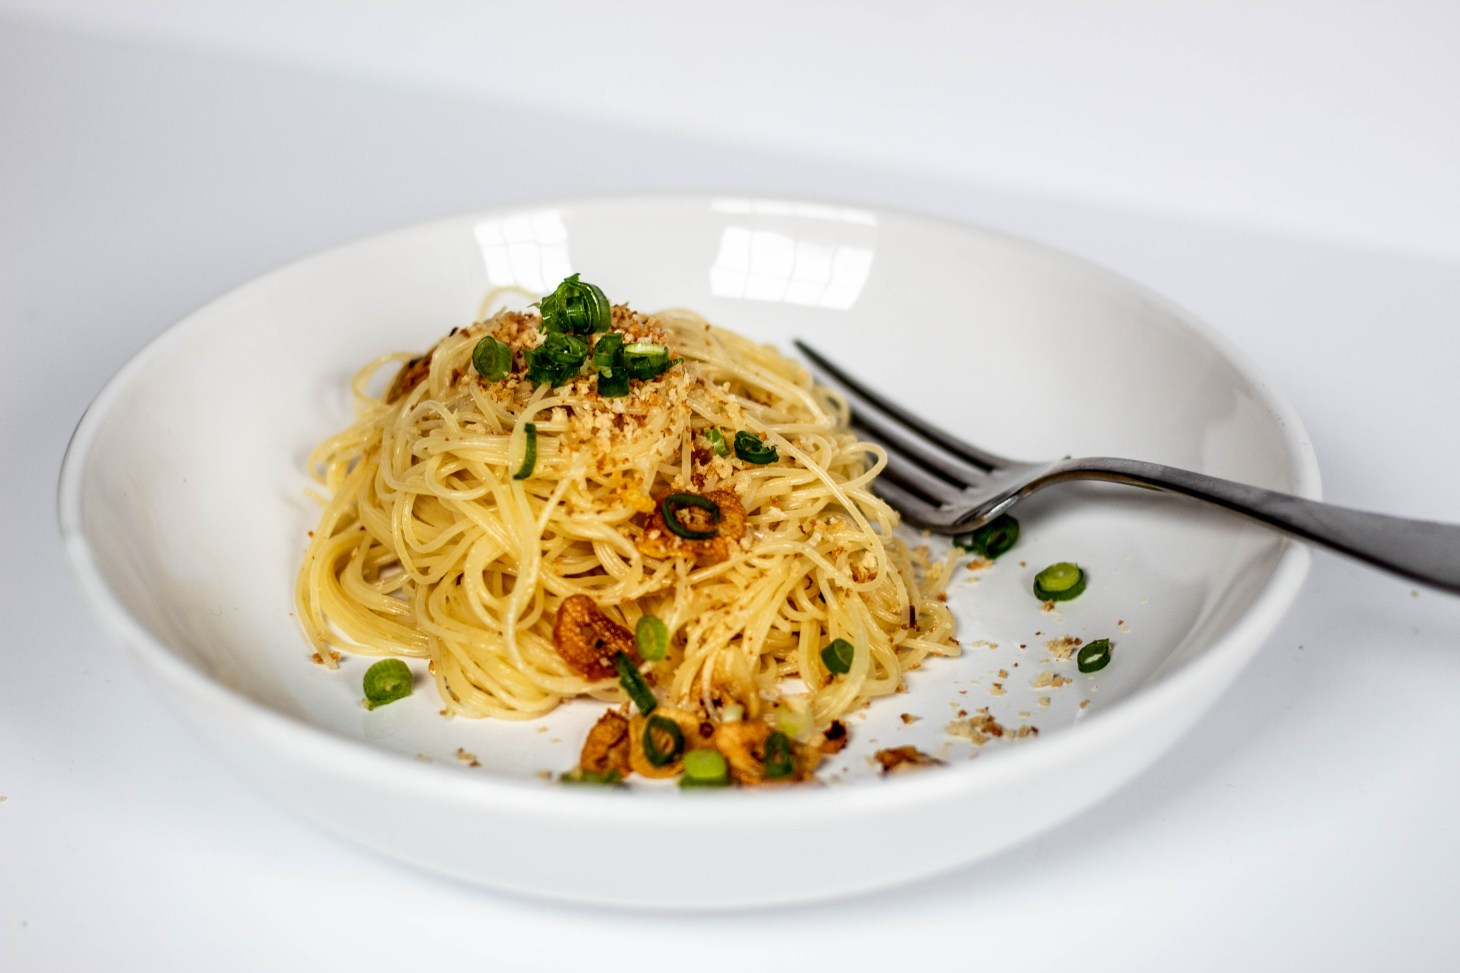 Spaghetti in Garlic Oil in a white plate dusted with breadcrumbs and spring onion slices